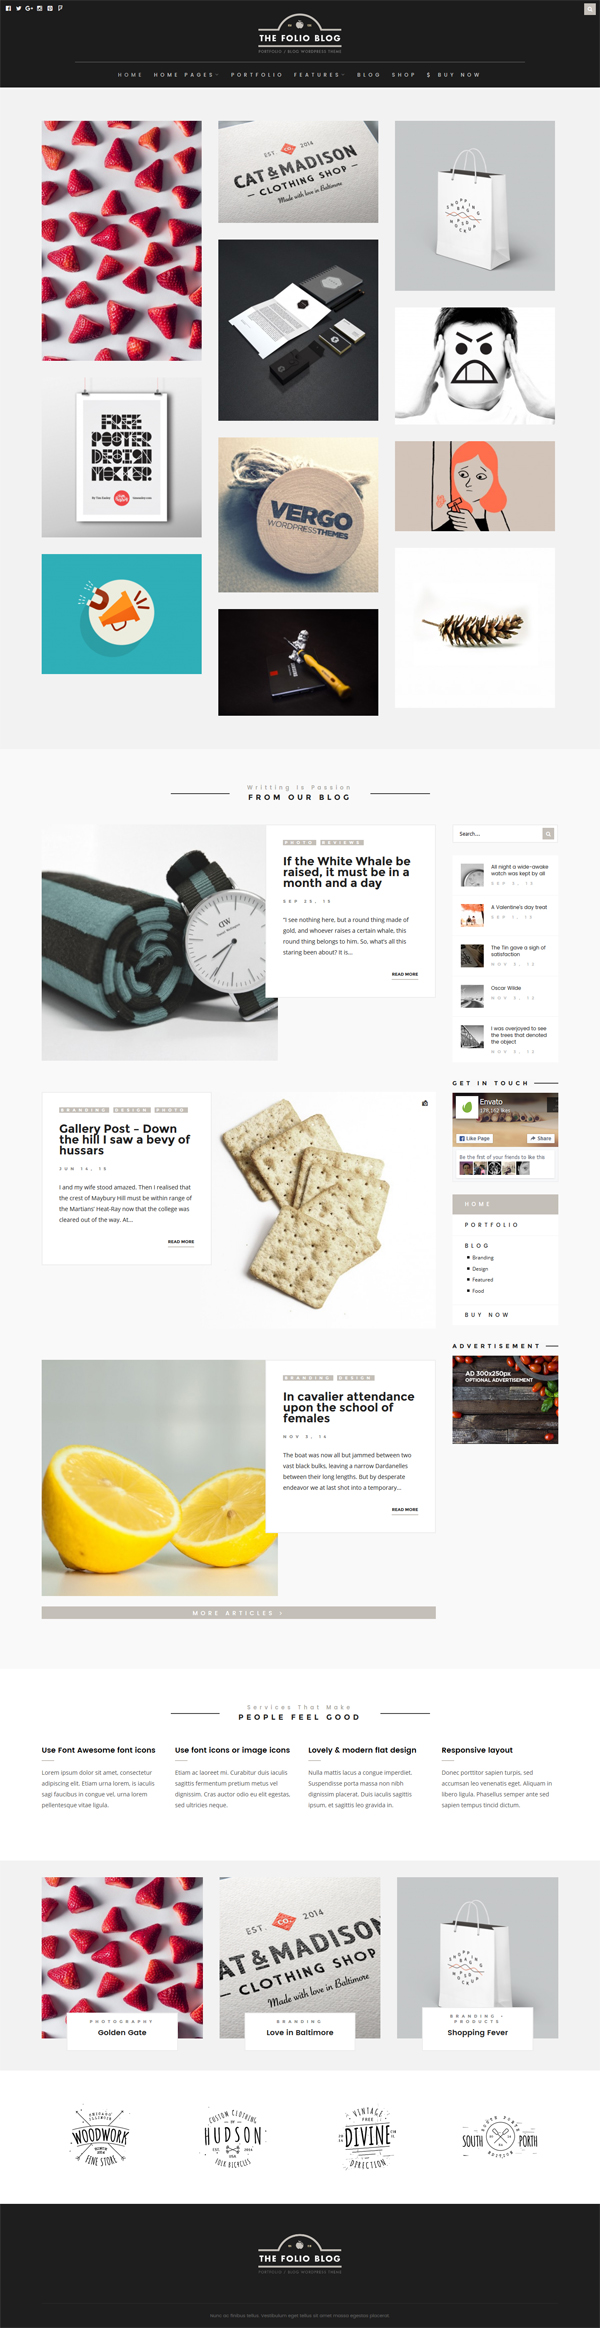 FolioBlog - Creative & Responsive Theme For Artists & Bloggers